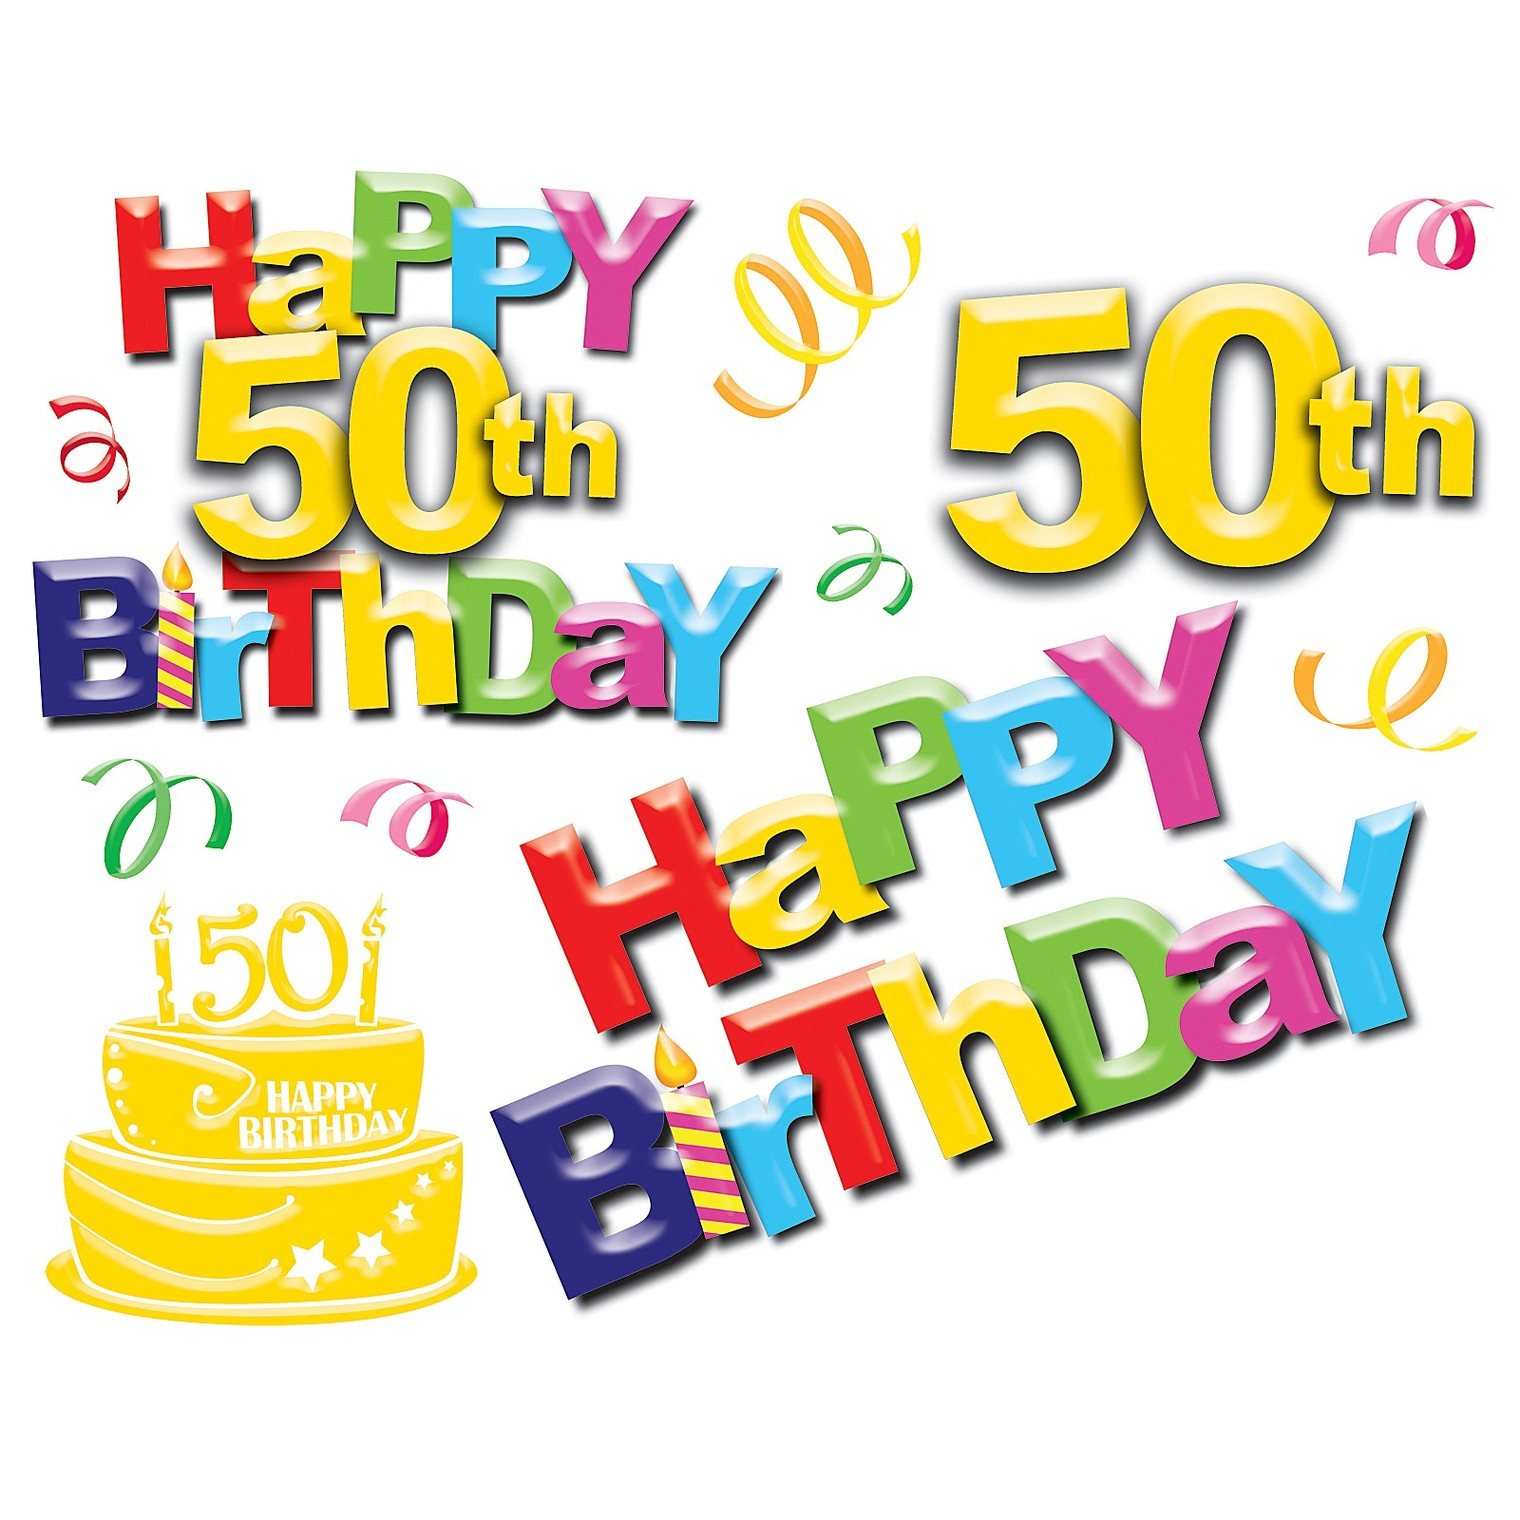 50th birthday party clipart clip art freeuse download Free Fiftieth Birthday Cliparts, Download Free Clip Art, Free Clip ... clip art freeuse download